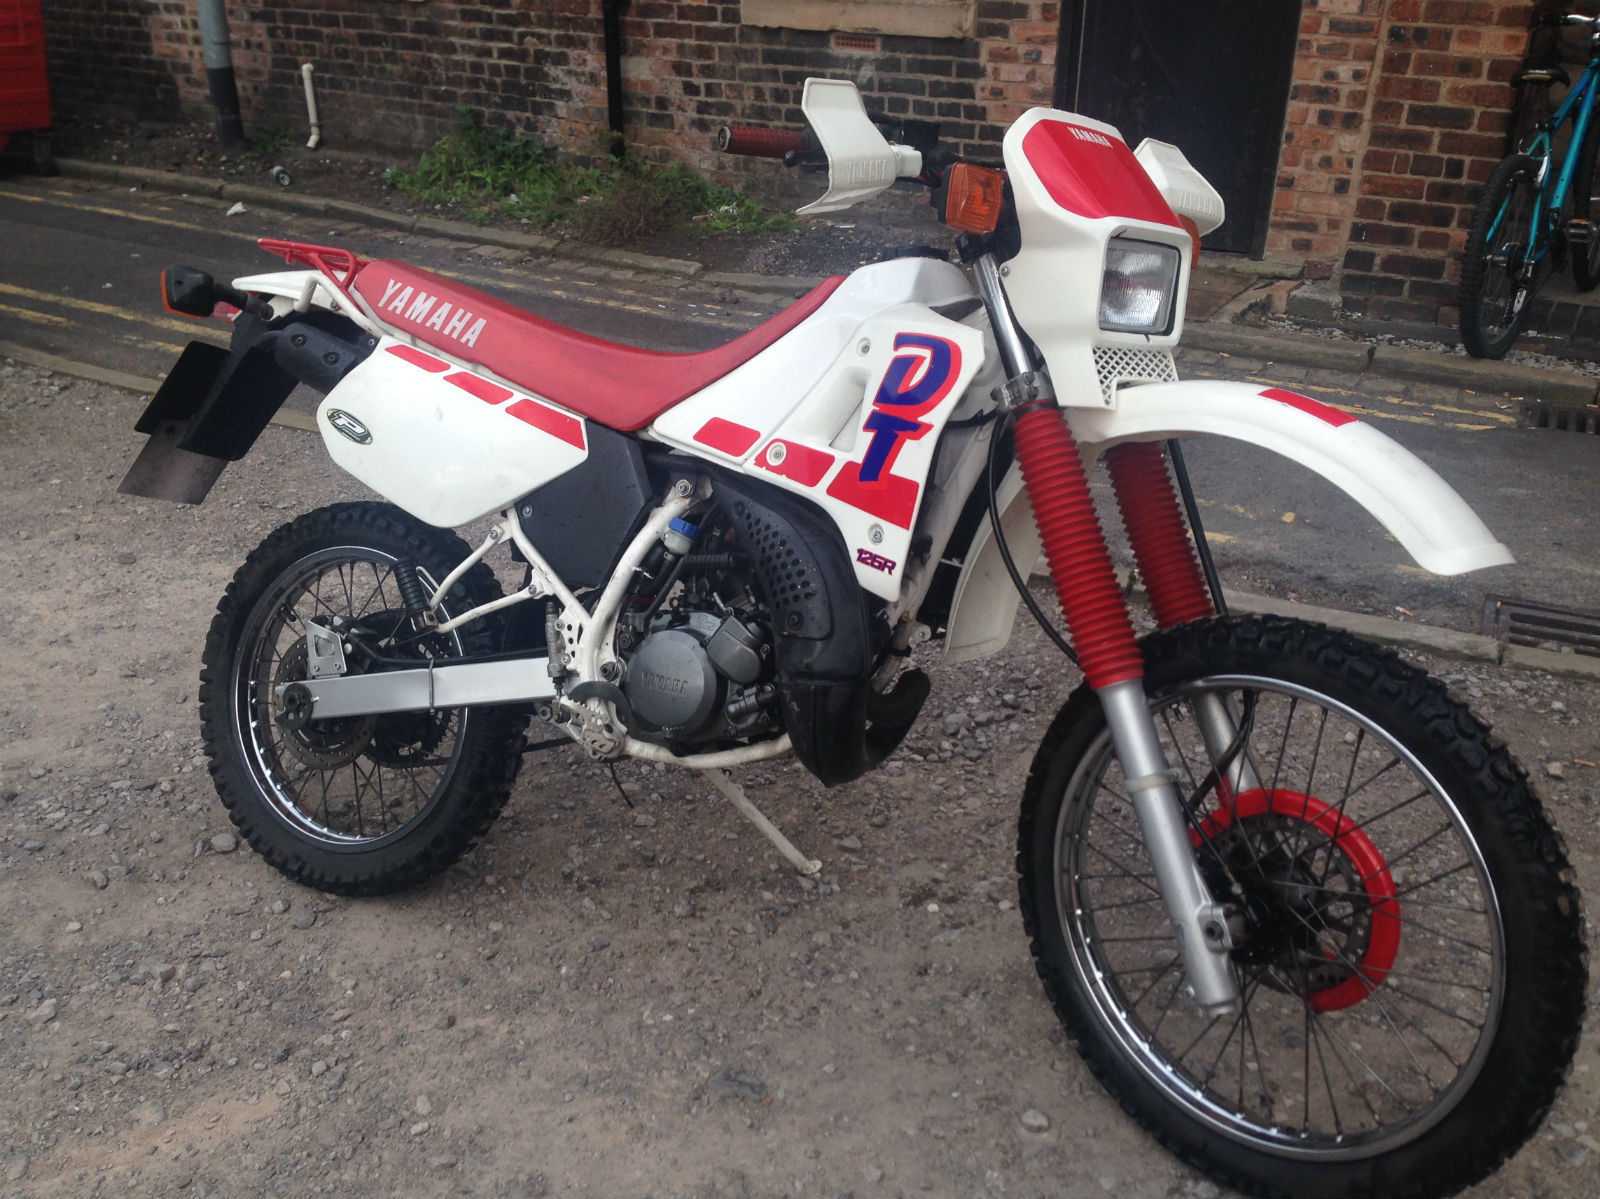 yamaha dtr 125 dt 125 1989 white red classic months m o t delivery. Black Bedroom Furniture Sets. Home Design Ideas